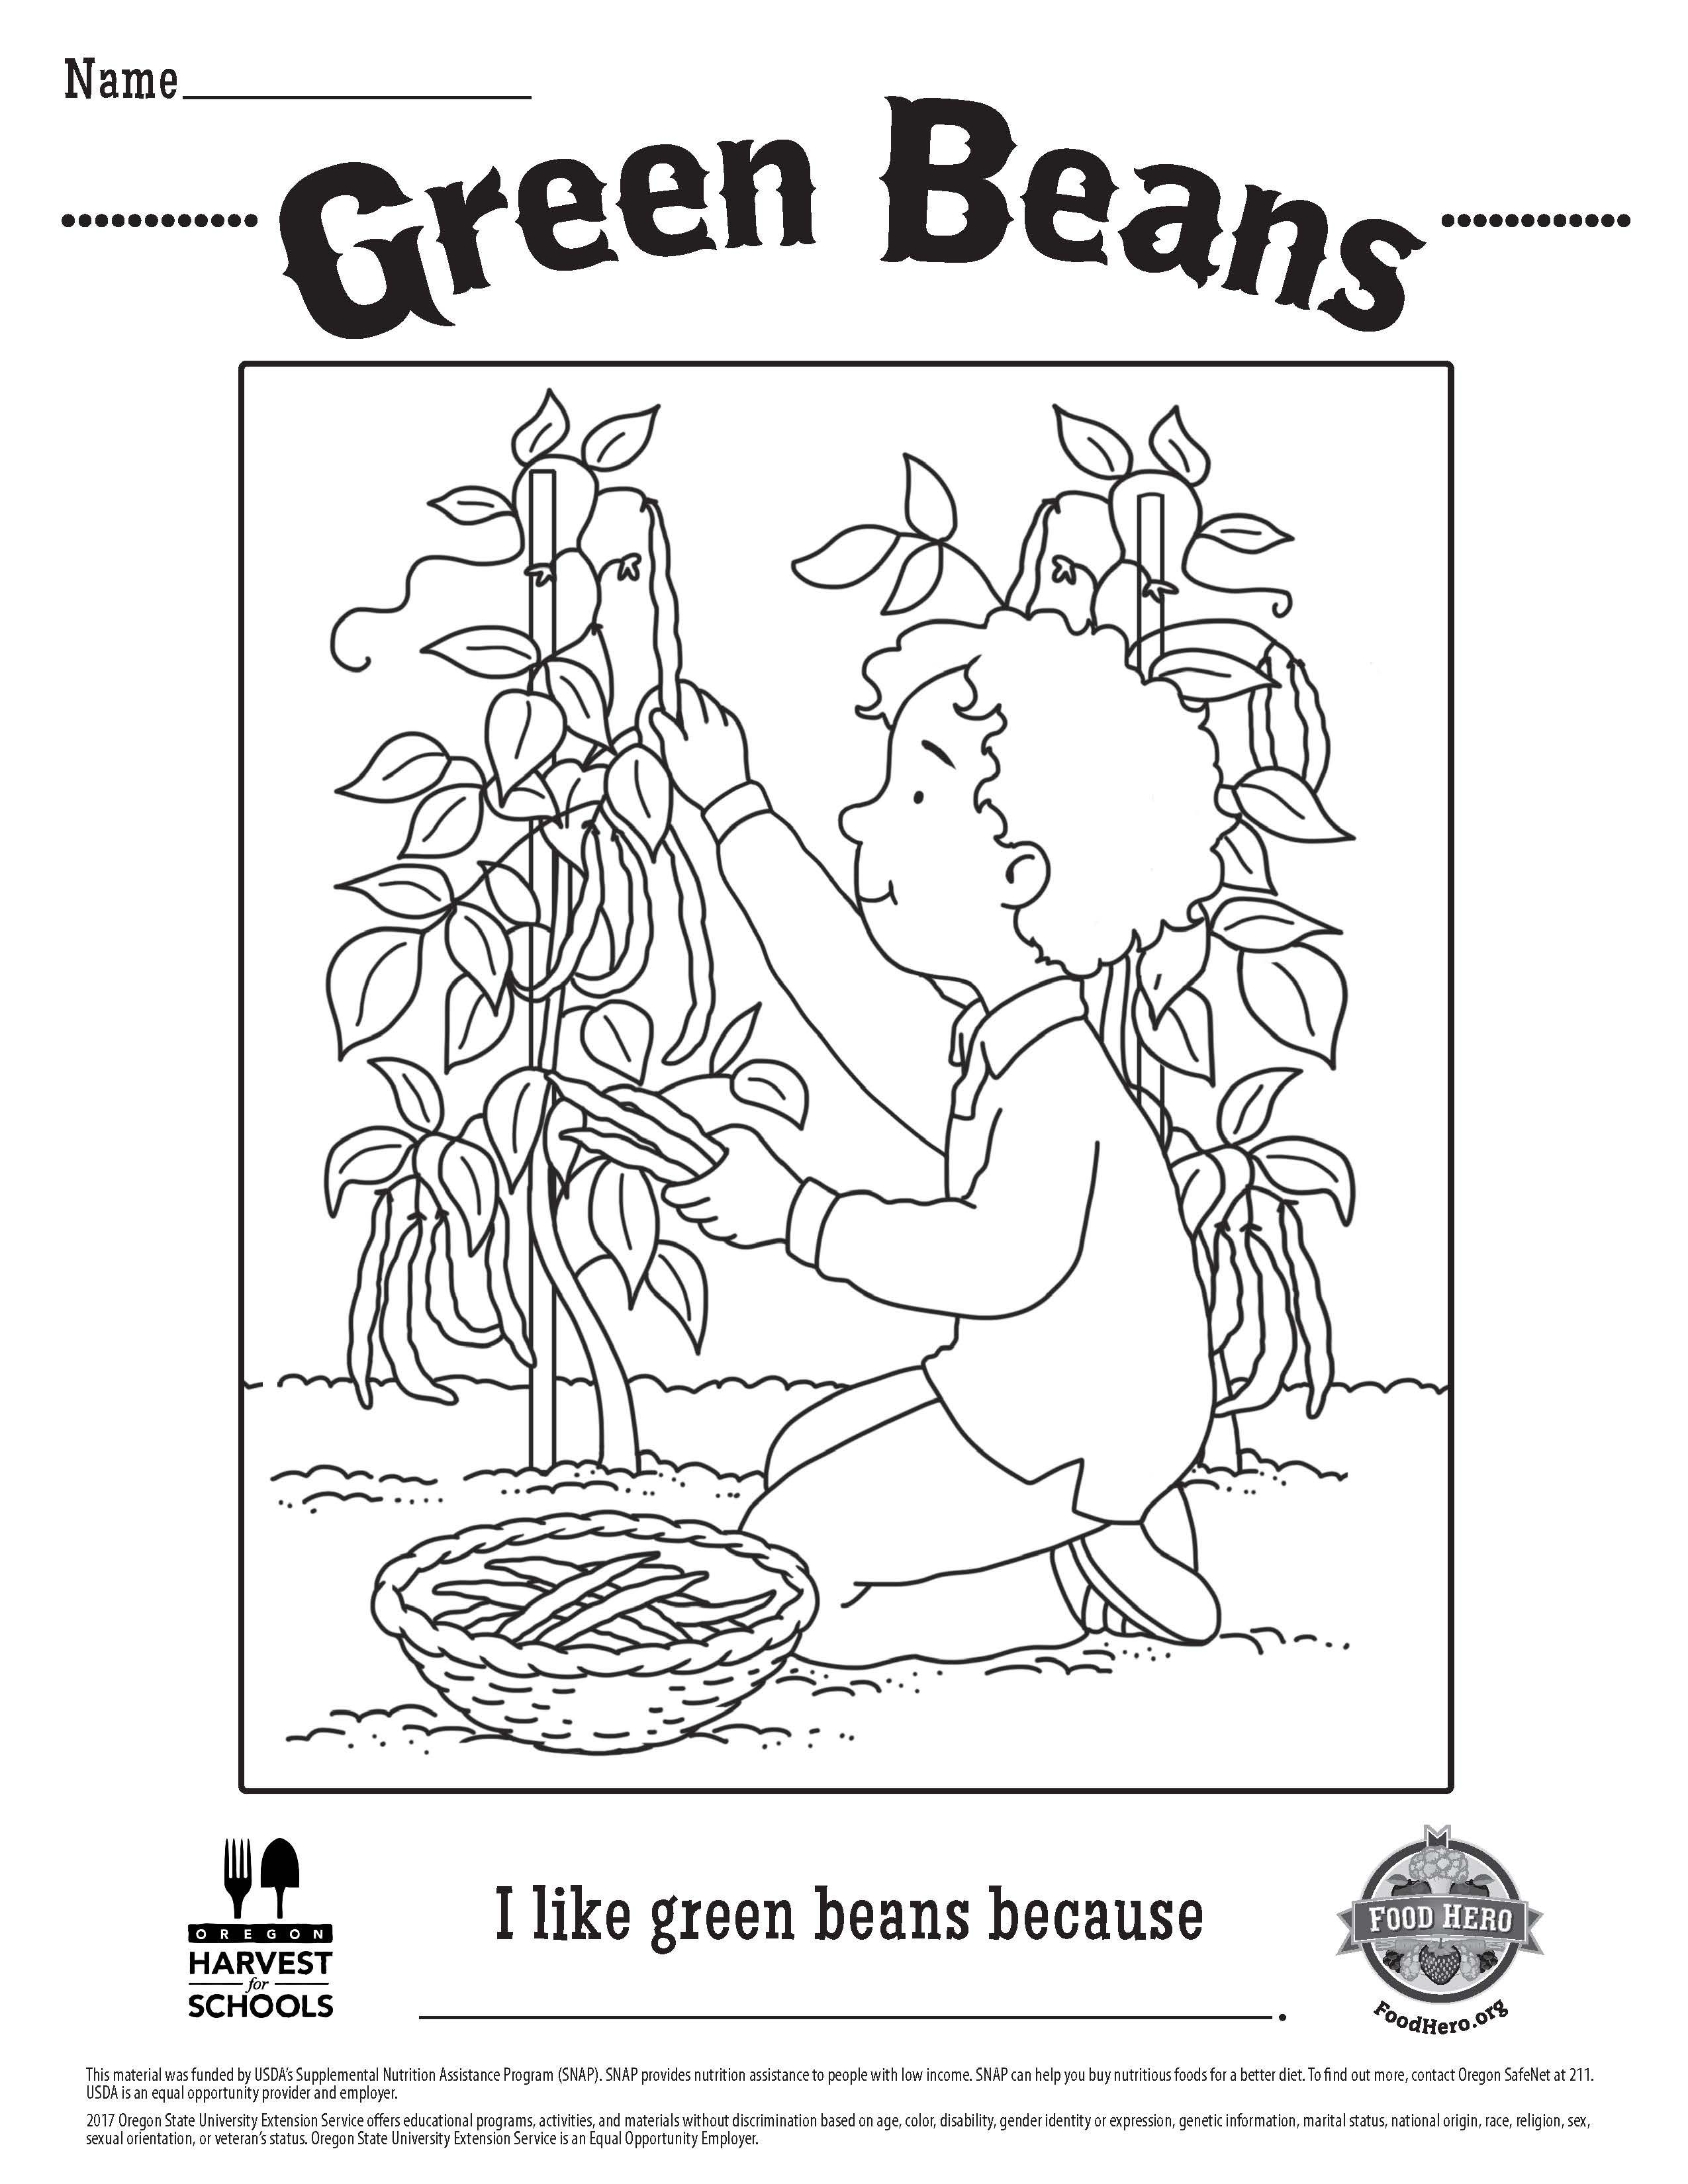 Children S Free Printable Food Hero Green Beans Coloring